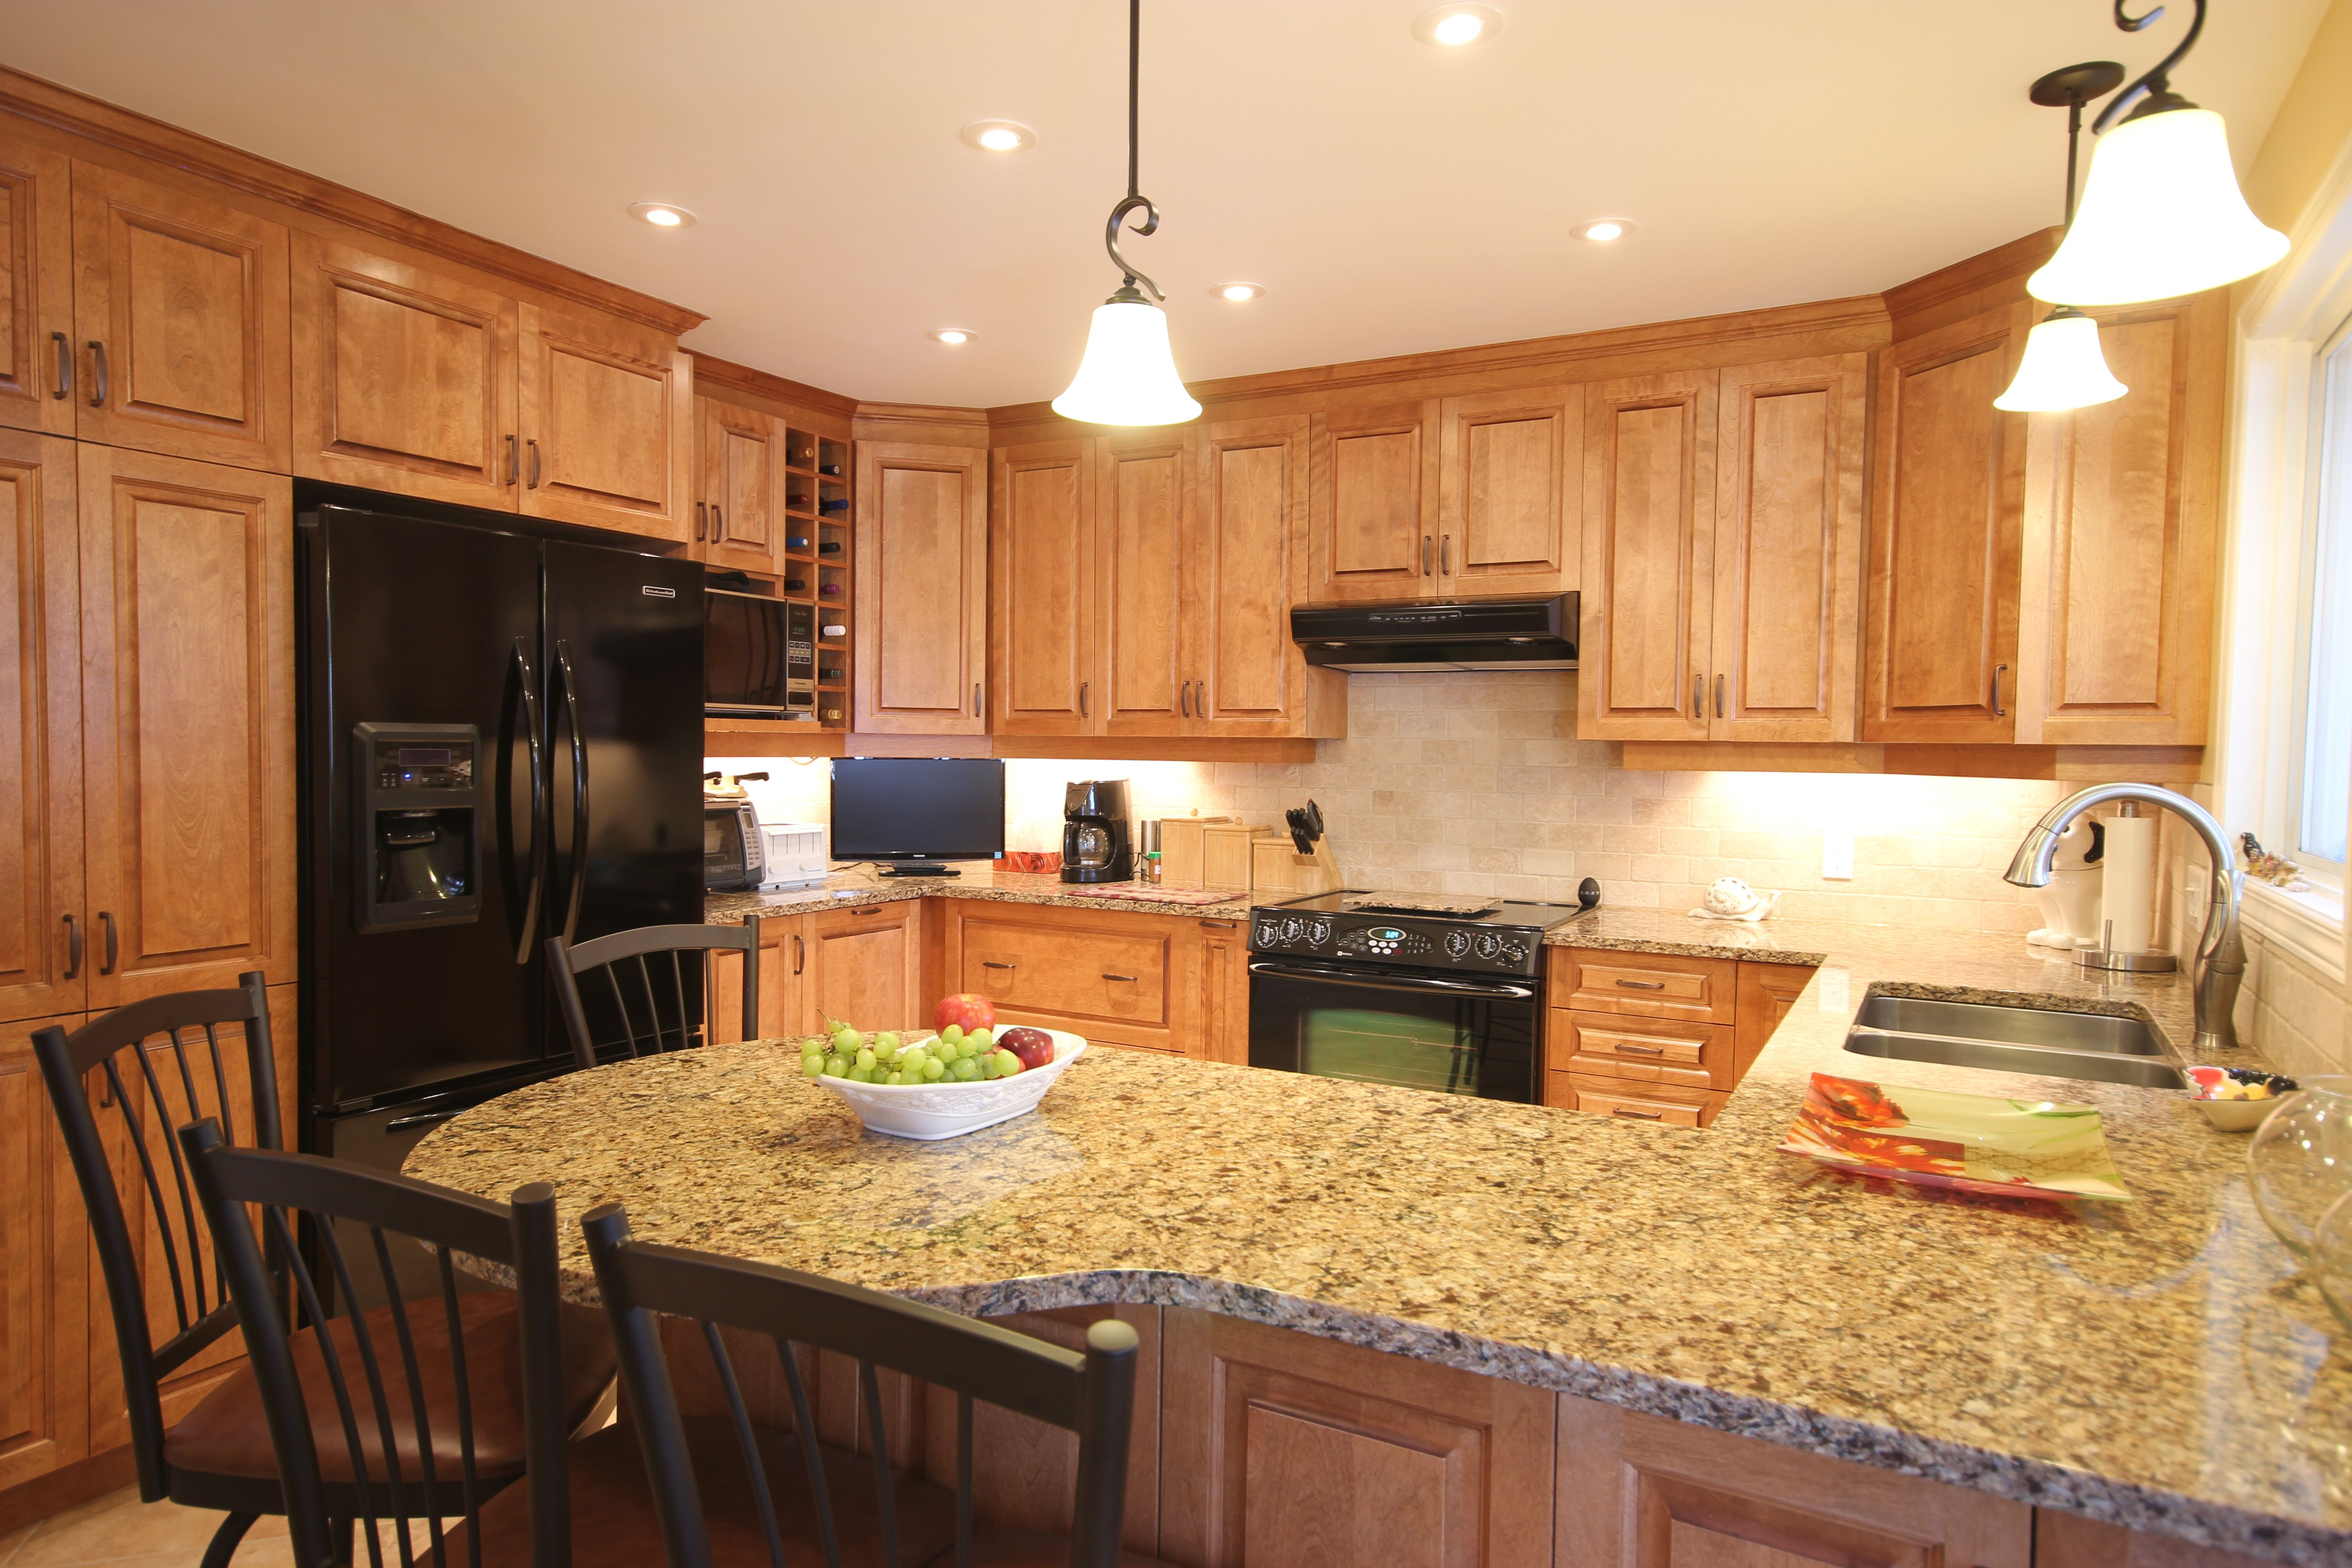 OakWood offers many different cabinetry options and pricing ...